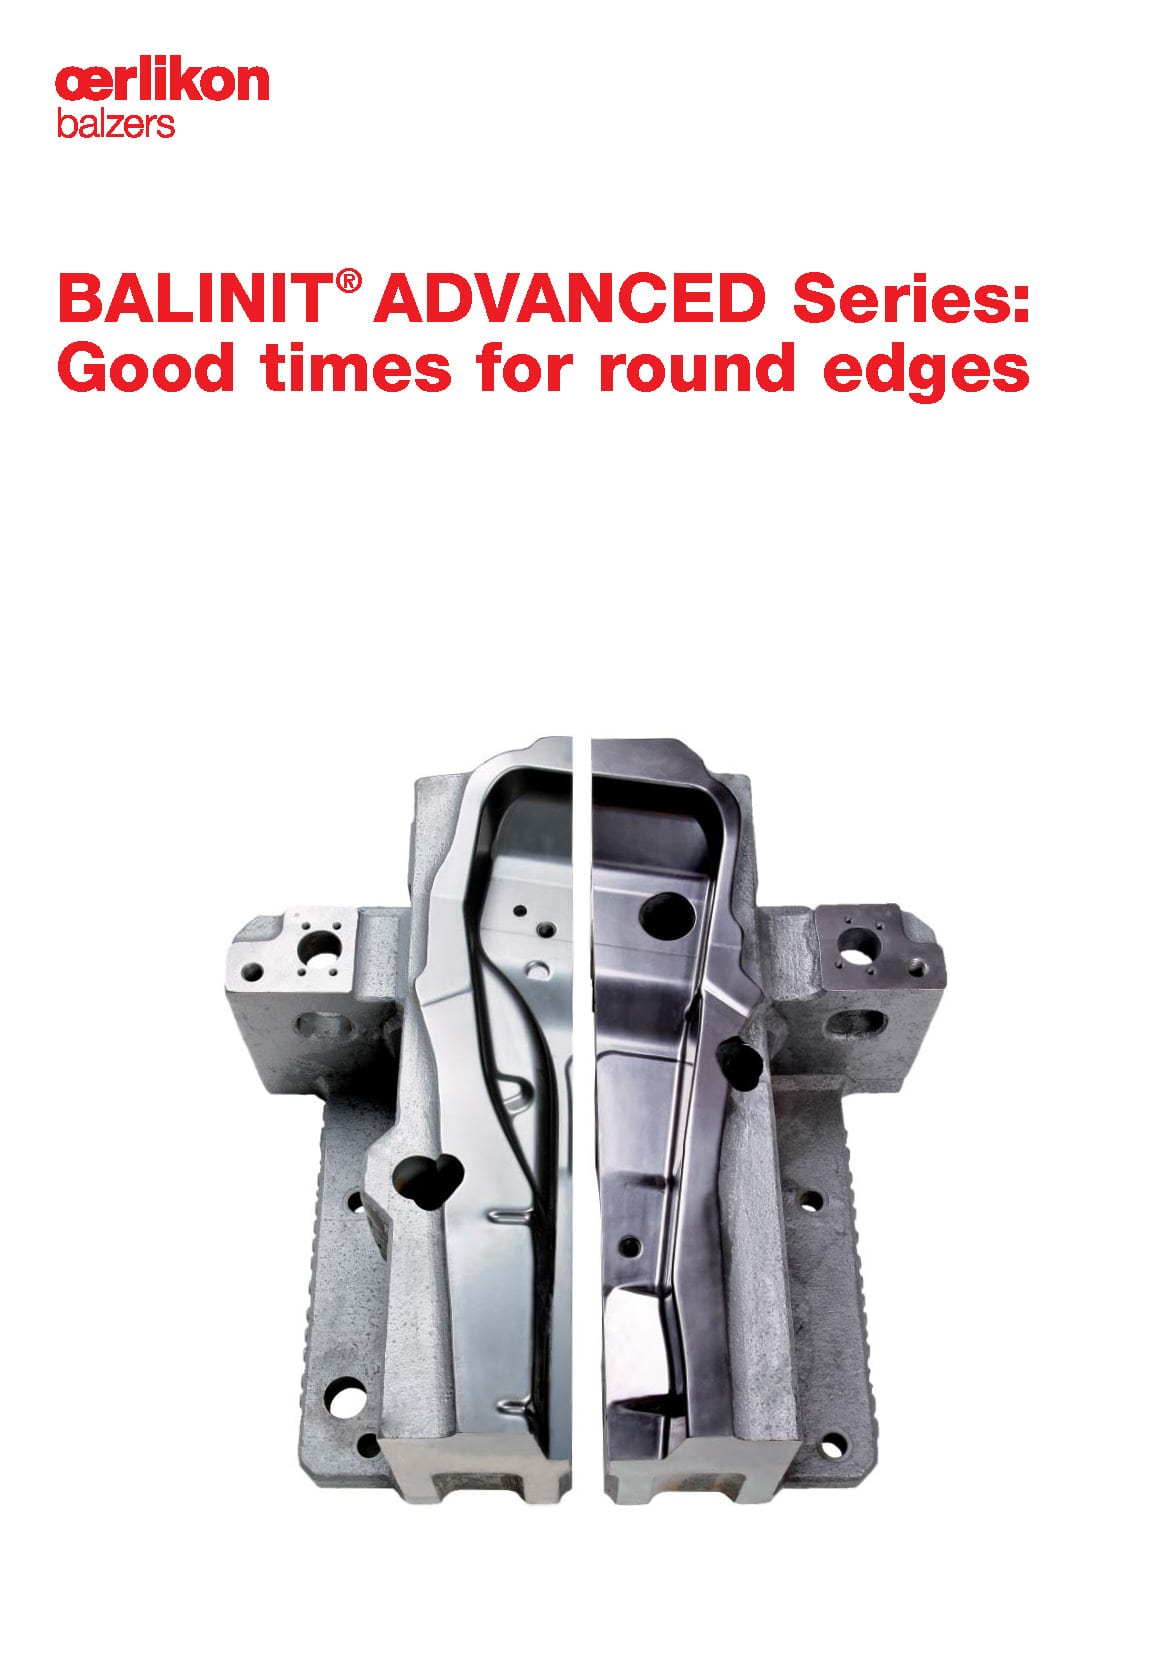 BALINIT® ADVANCED Series: Good times for round edges